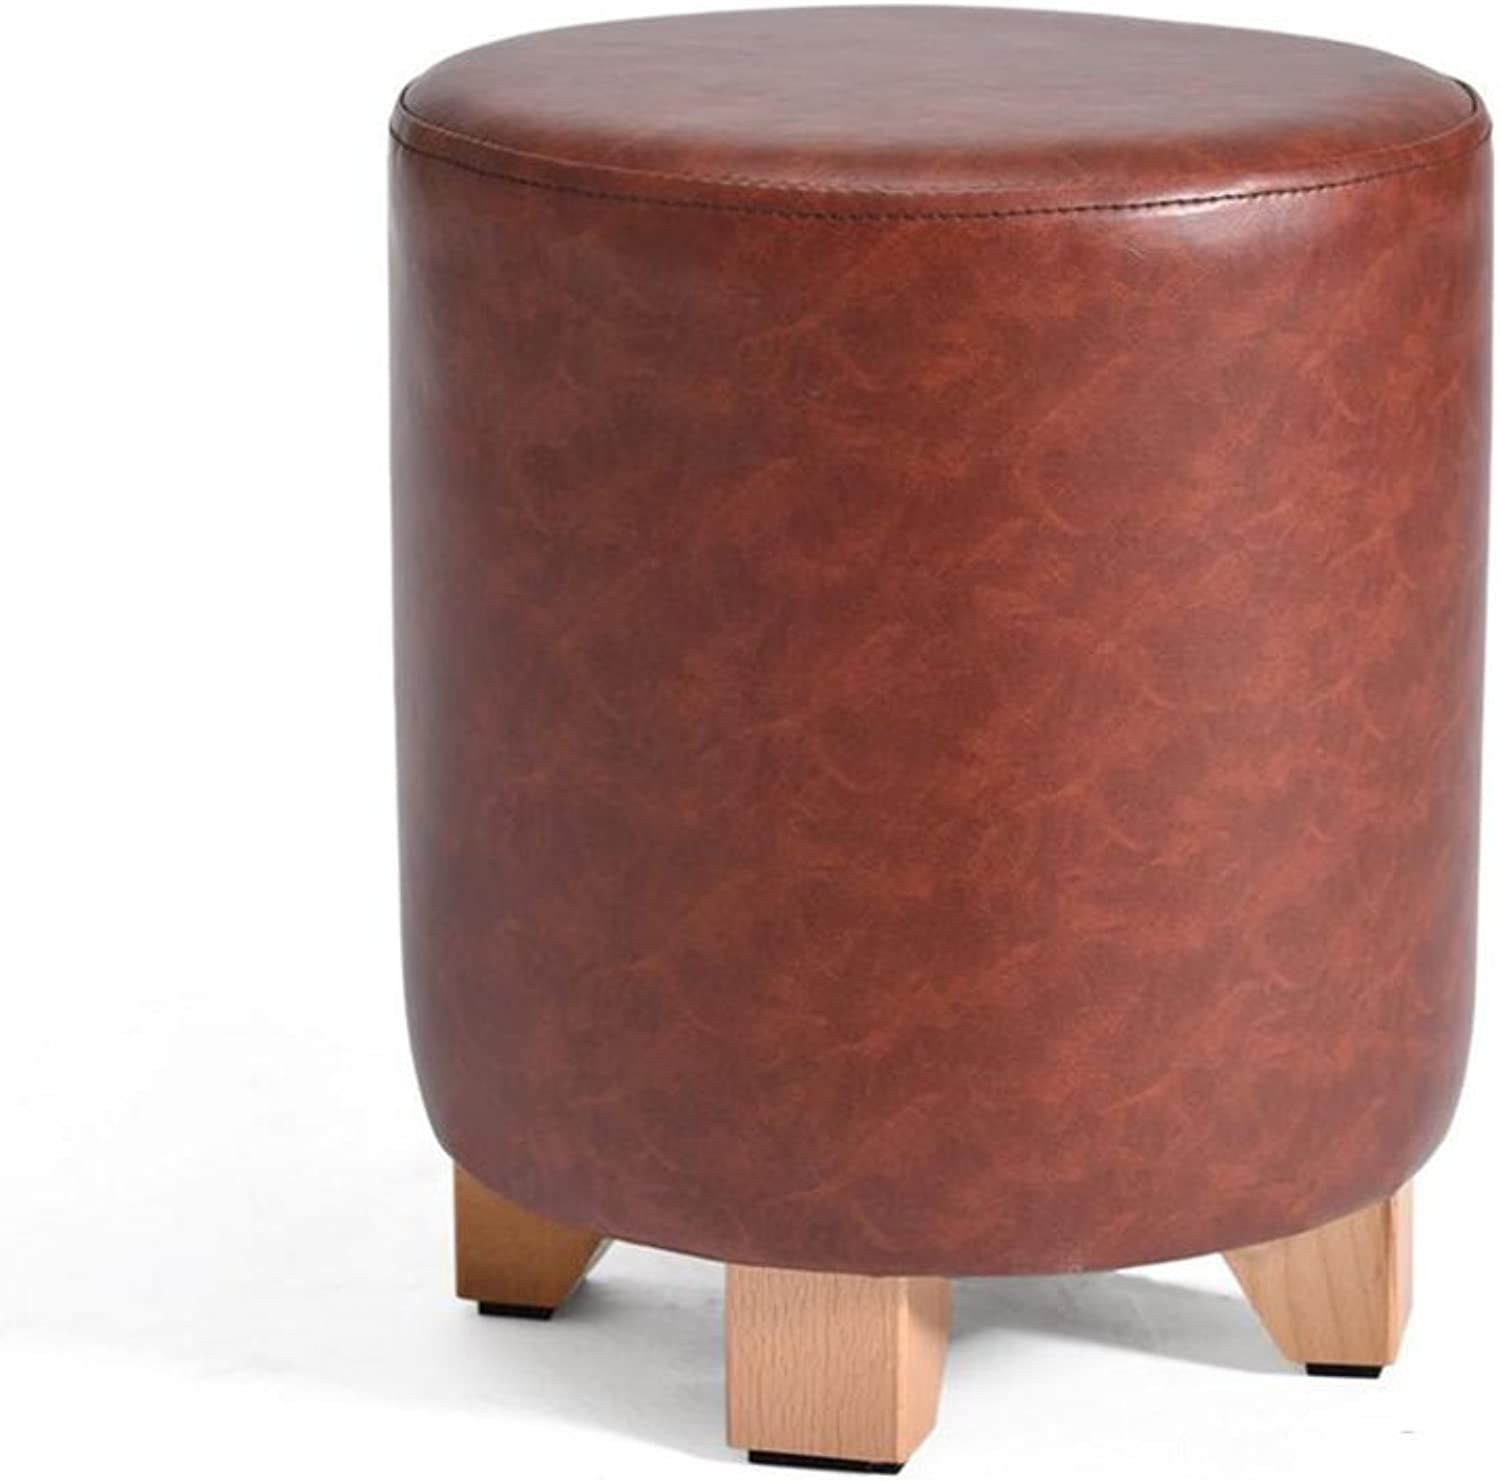 YCS Sofa Stool Short Pier PU Wooden Legs Make-up Stool shoes Stool H35  29 (color   Dark Red)